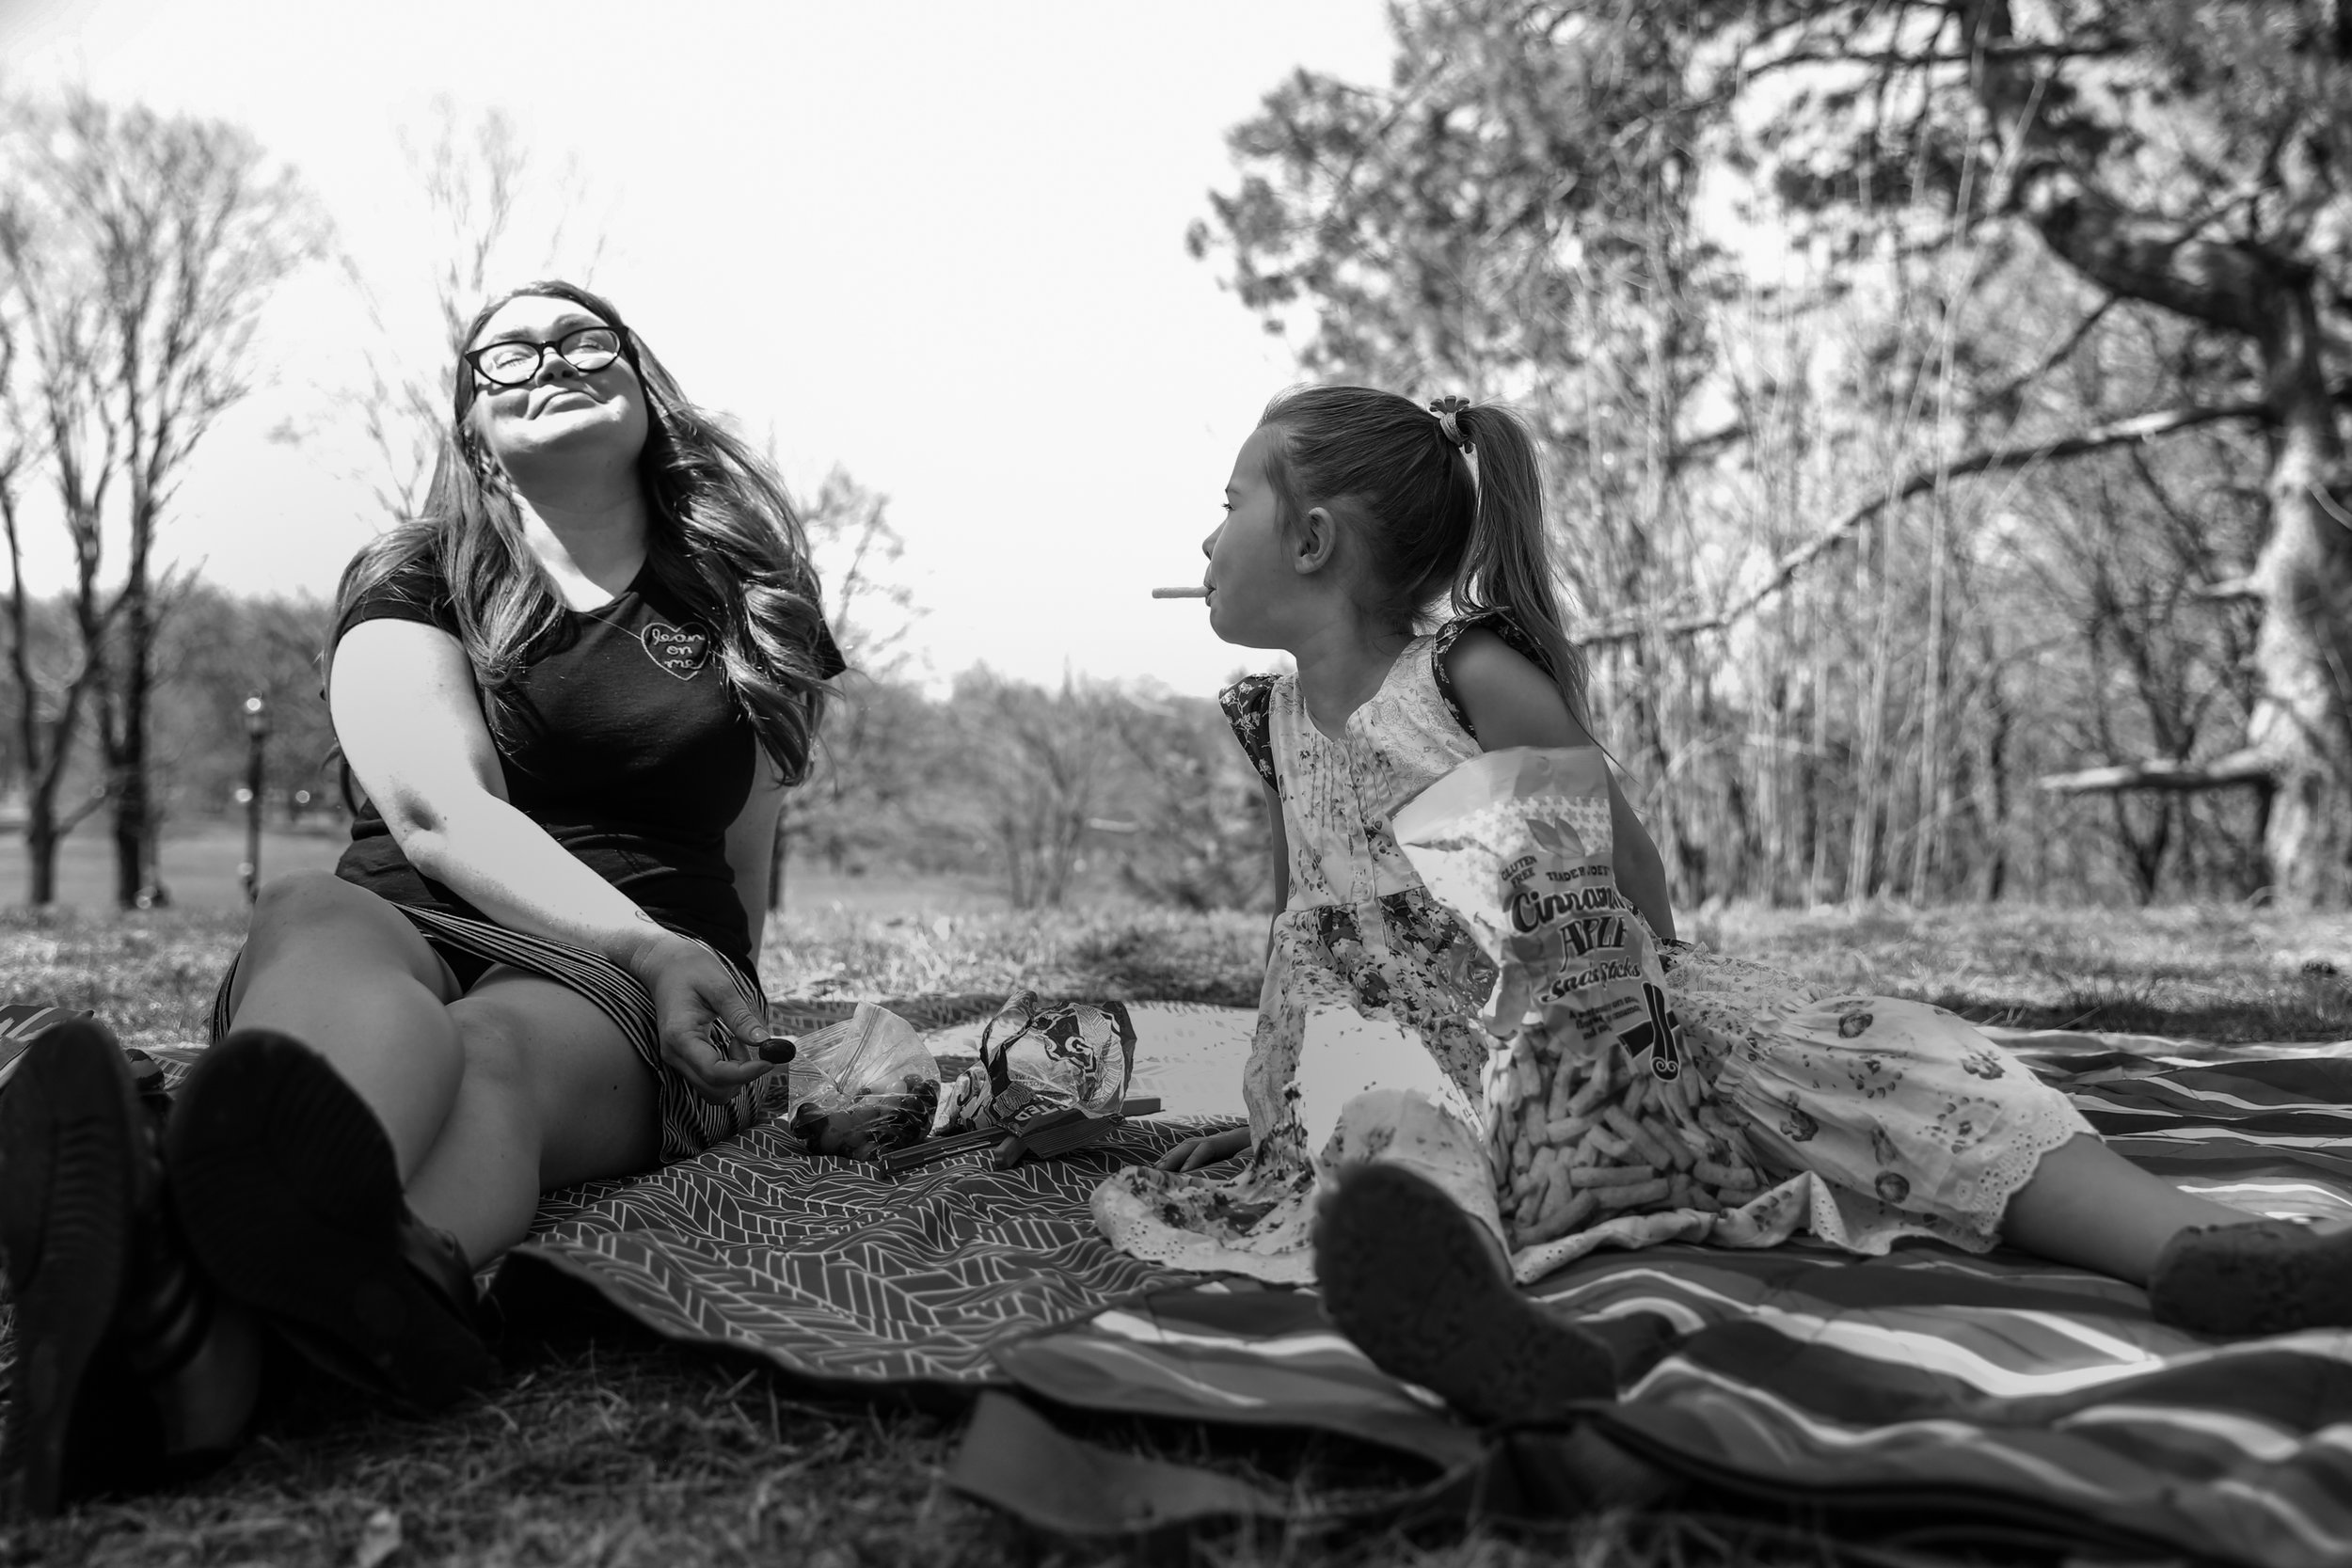 Girl sticks snack out of her mouth while sitting on picnic blanket with seated woman